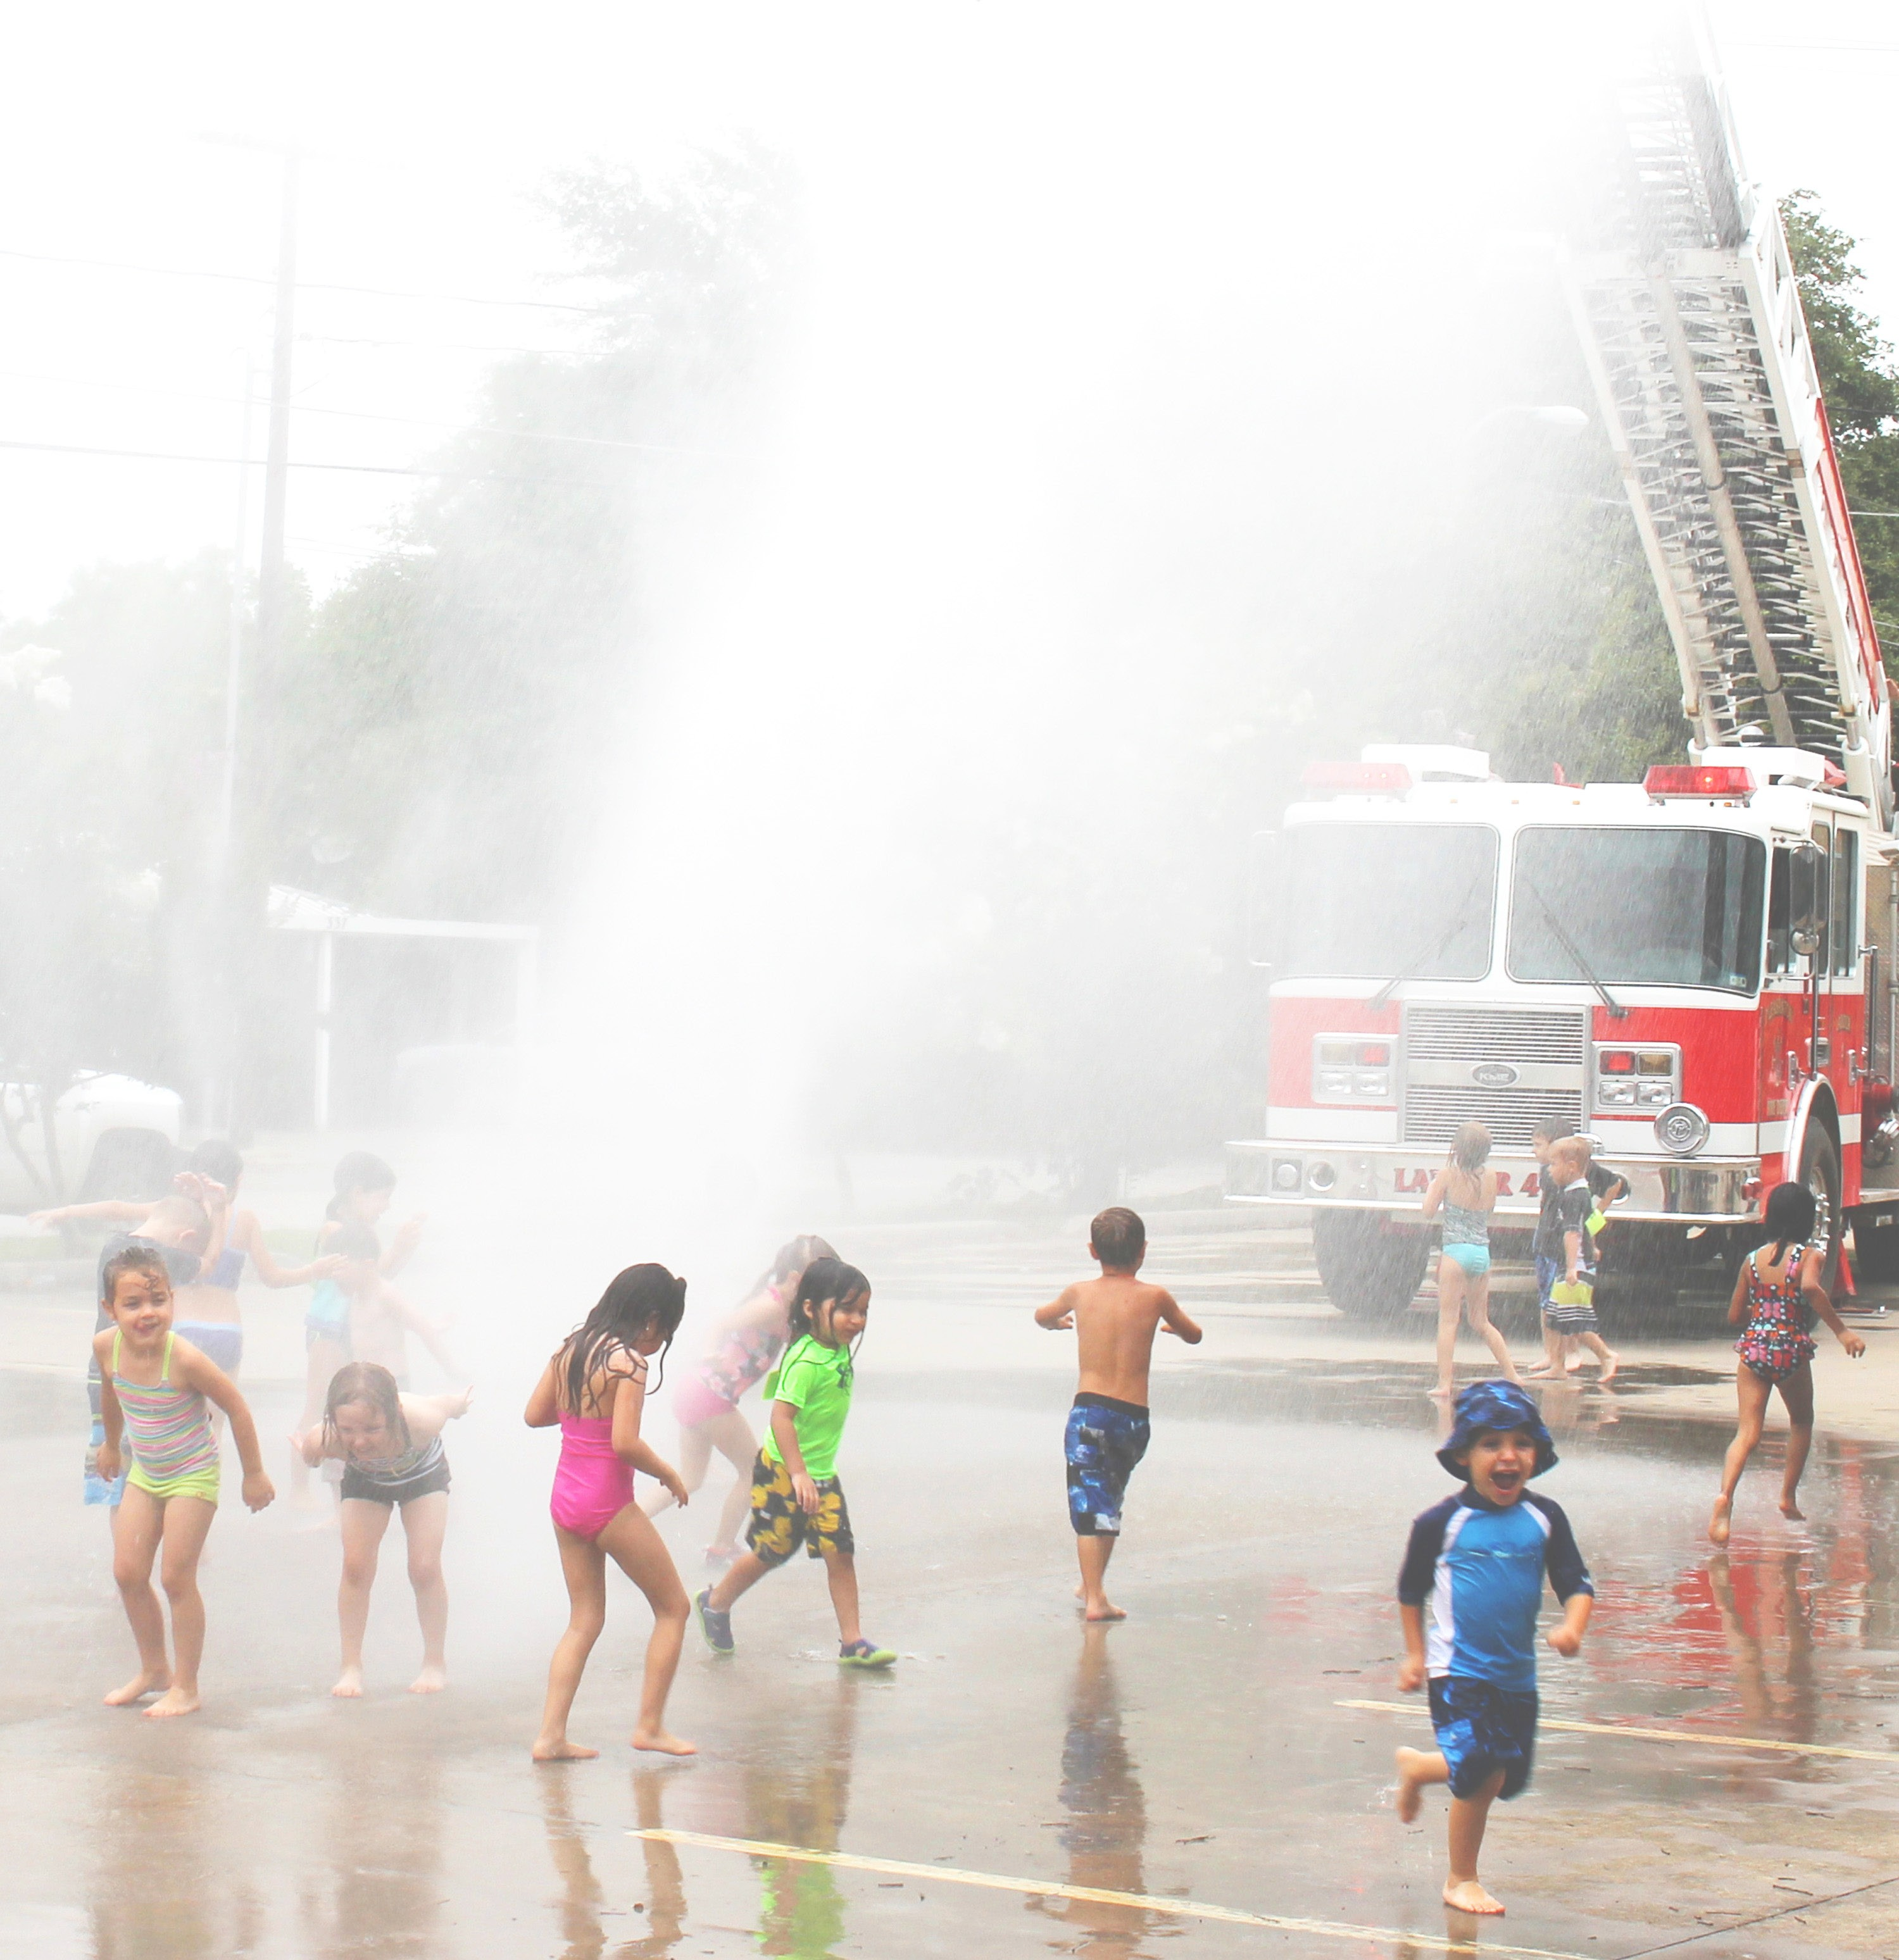 Kiddos at First Baptist Church Child Development had a treat from the Pleasanton Fire Department last week for Water Play Day. The fire engine helped to spray and soak the tykes so they could cool off during the hot summer's day.